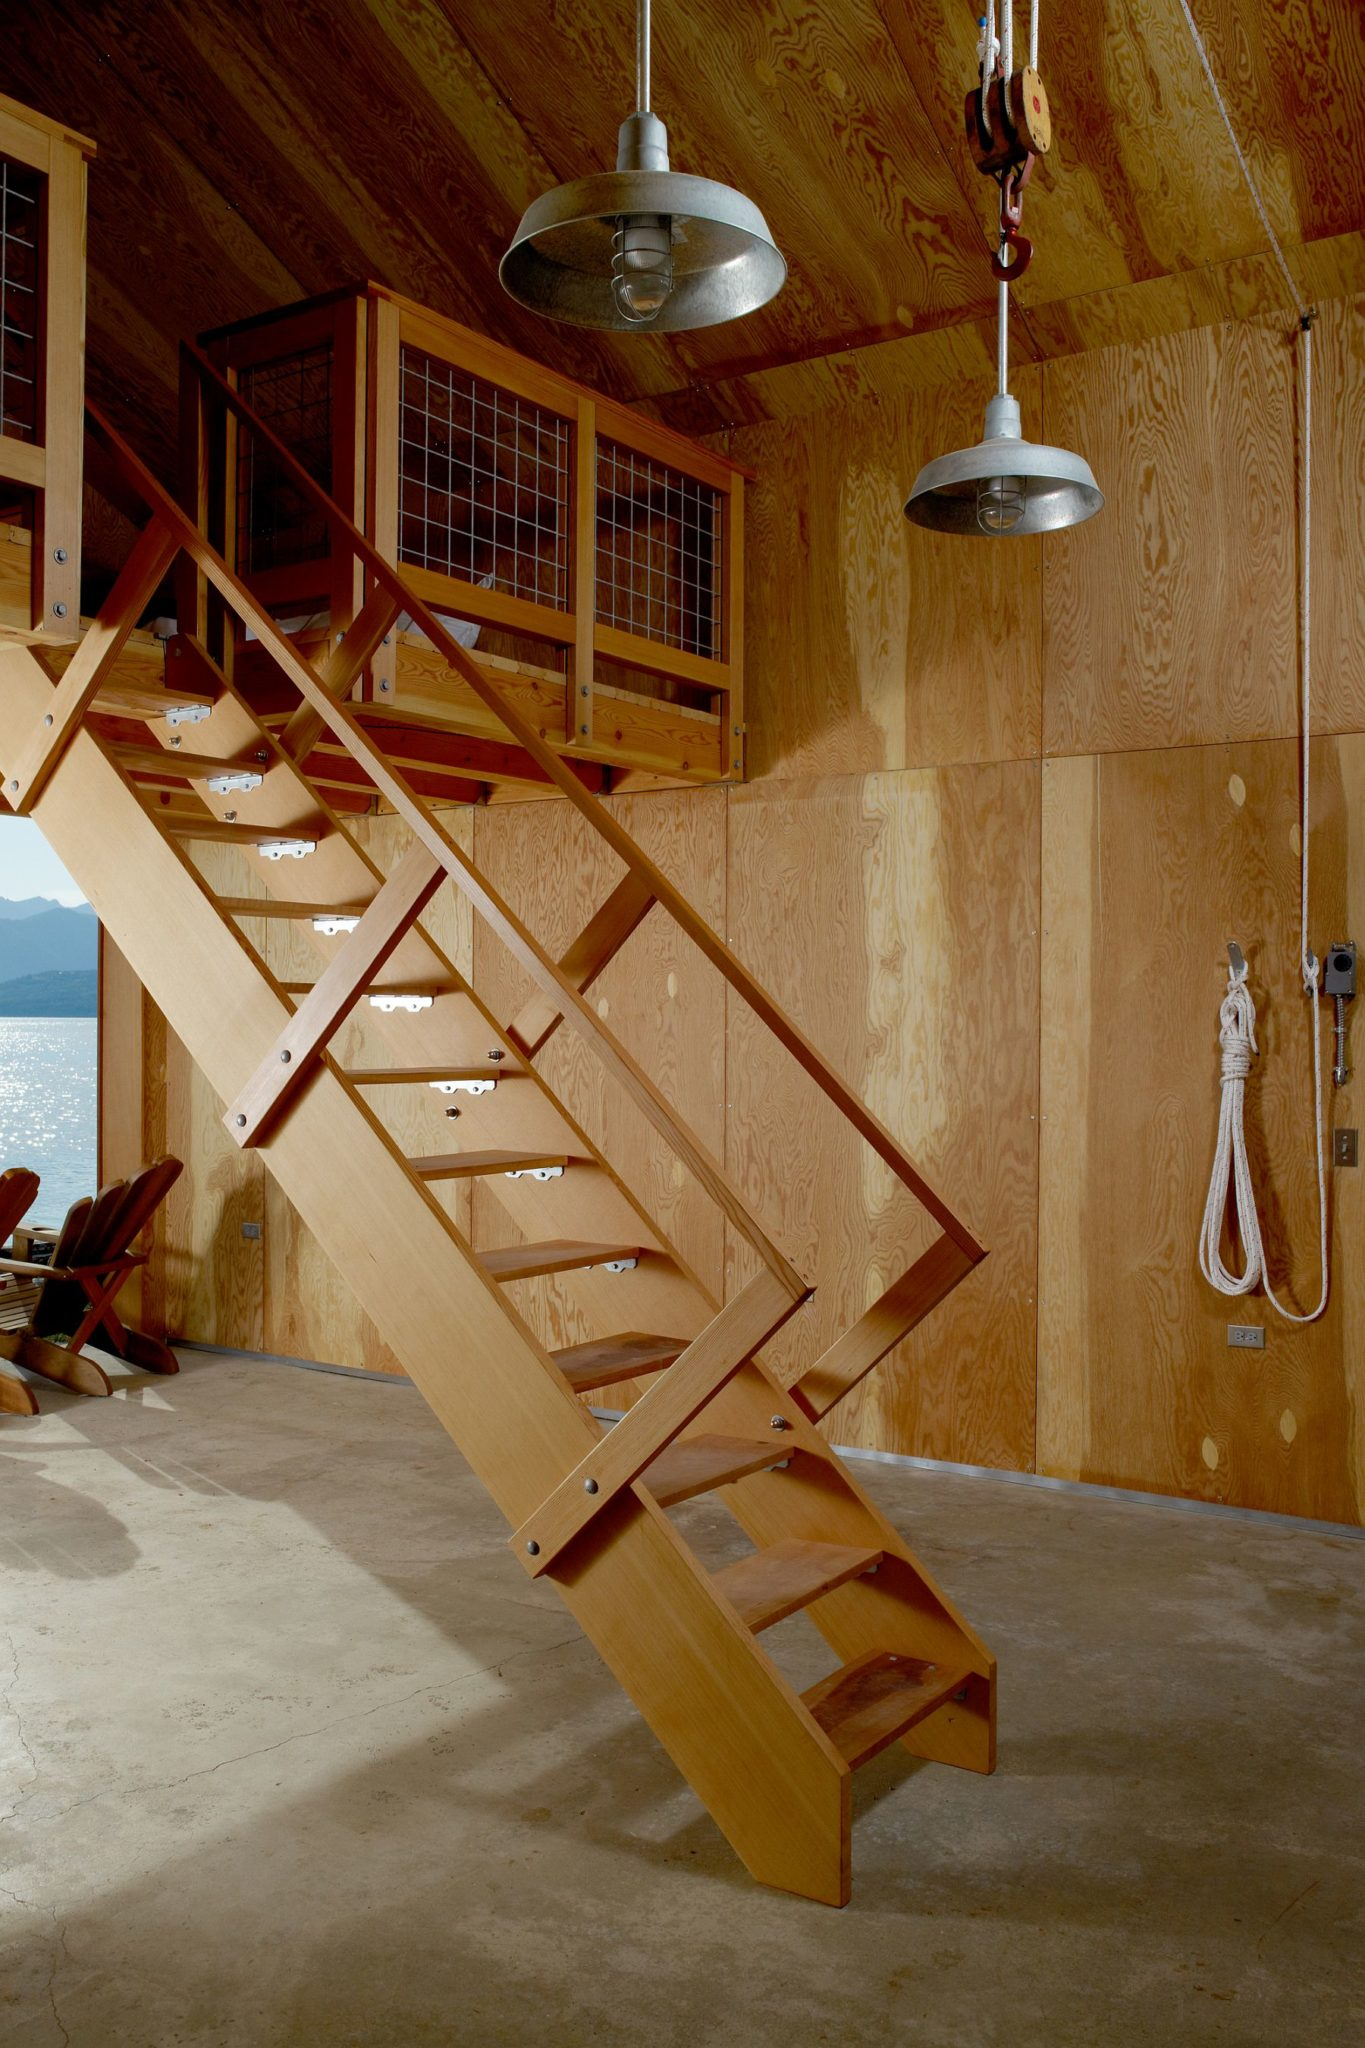 Retractable ladder for the attic bedroom inside the Boat House